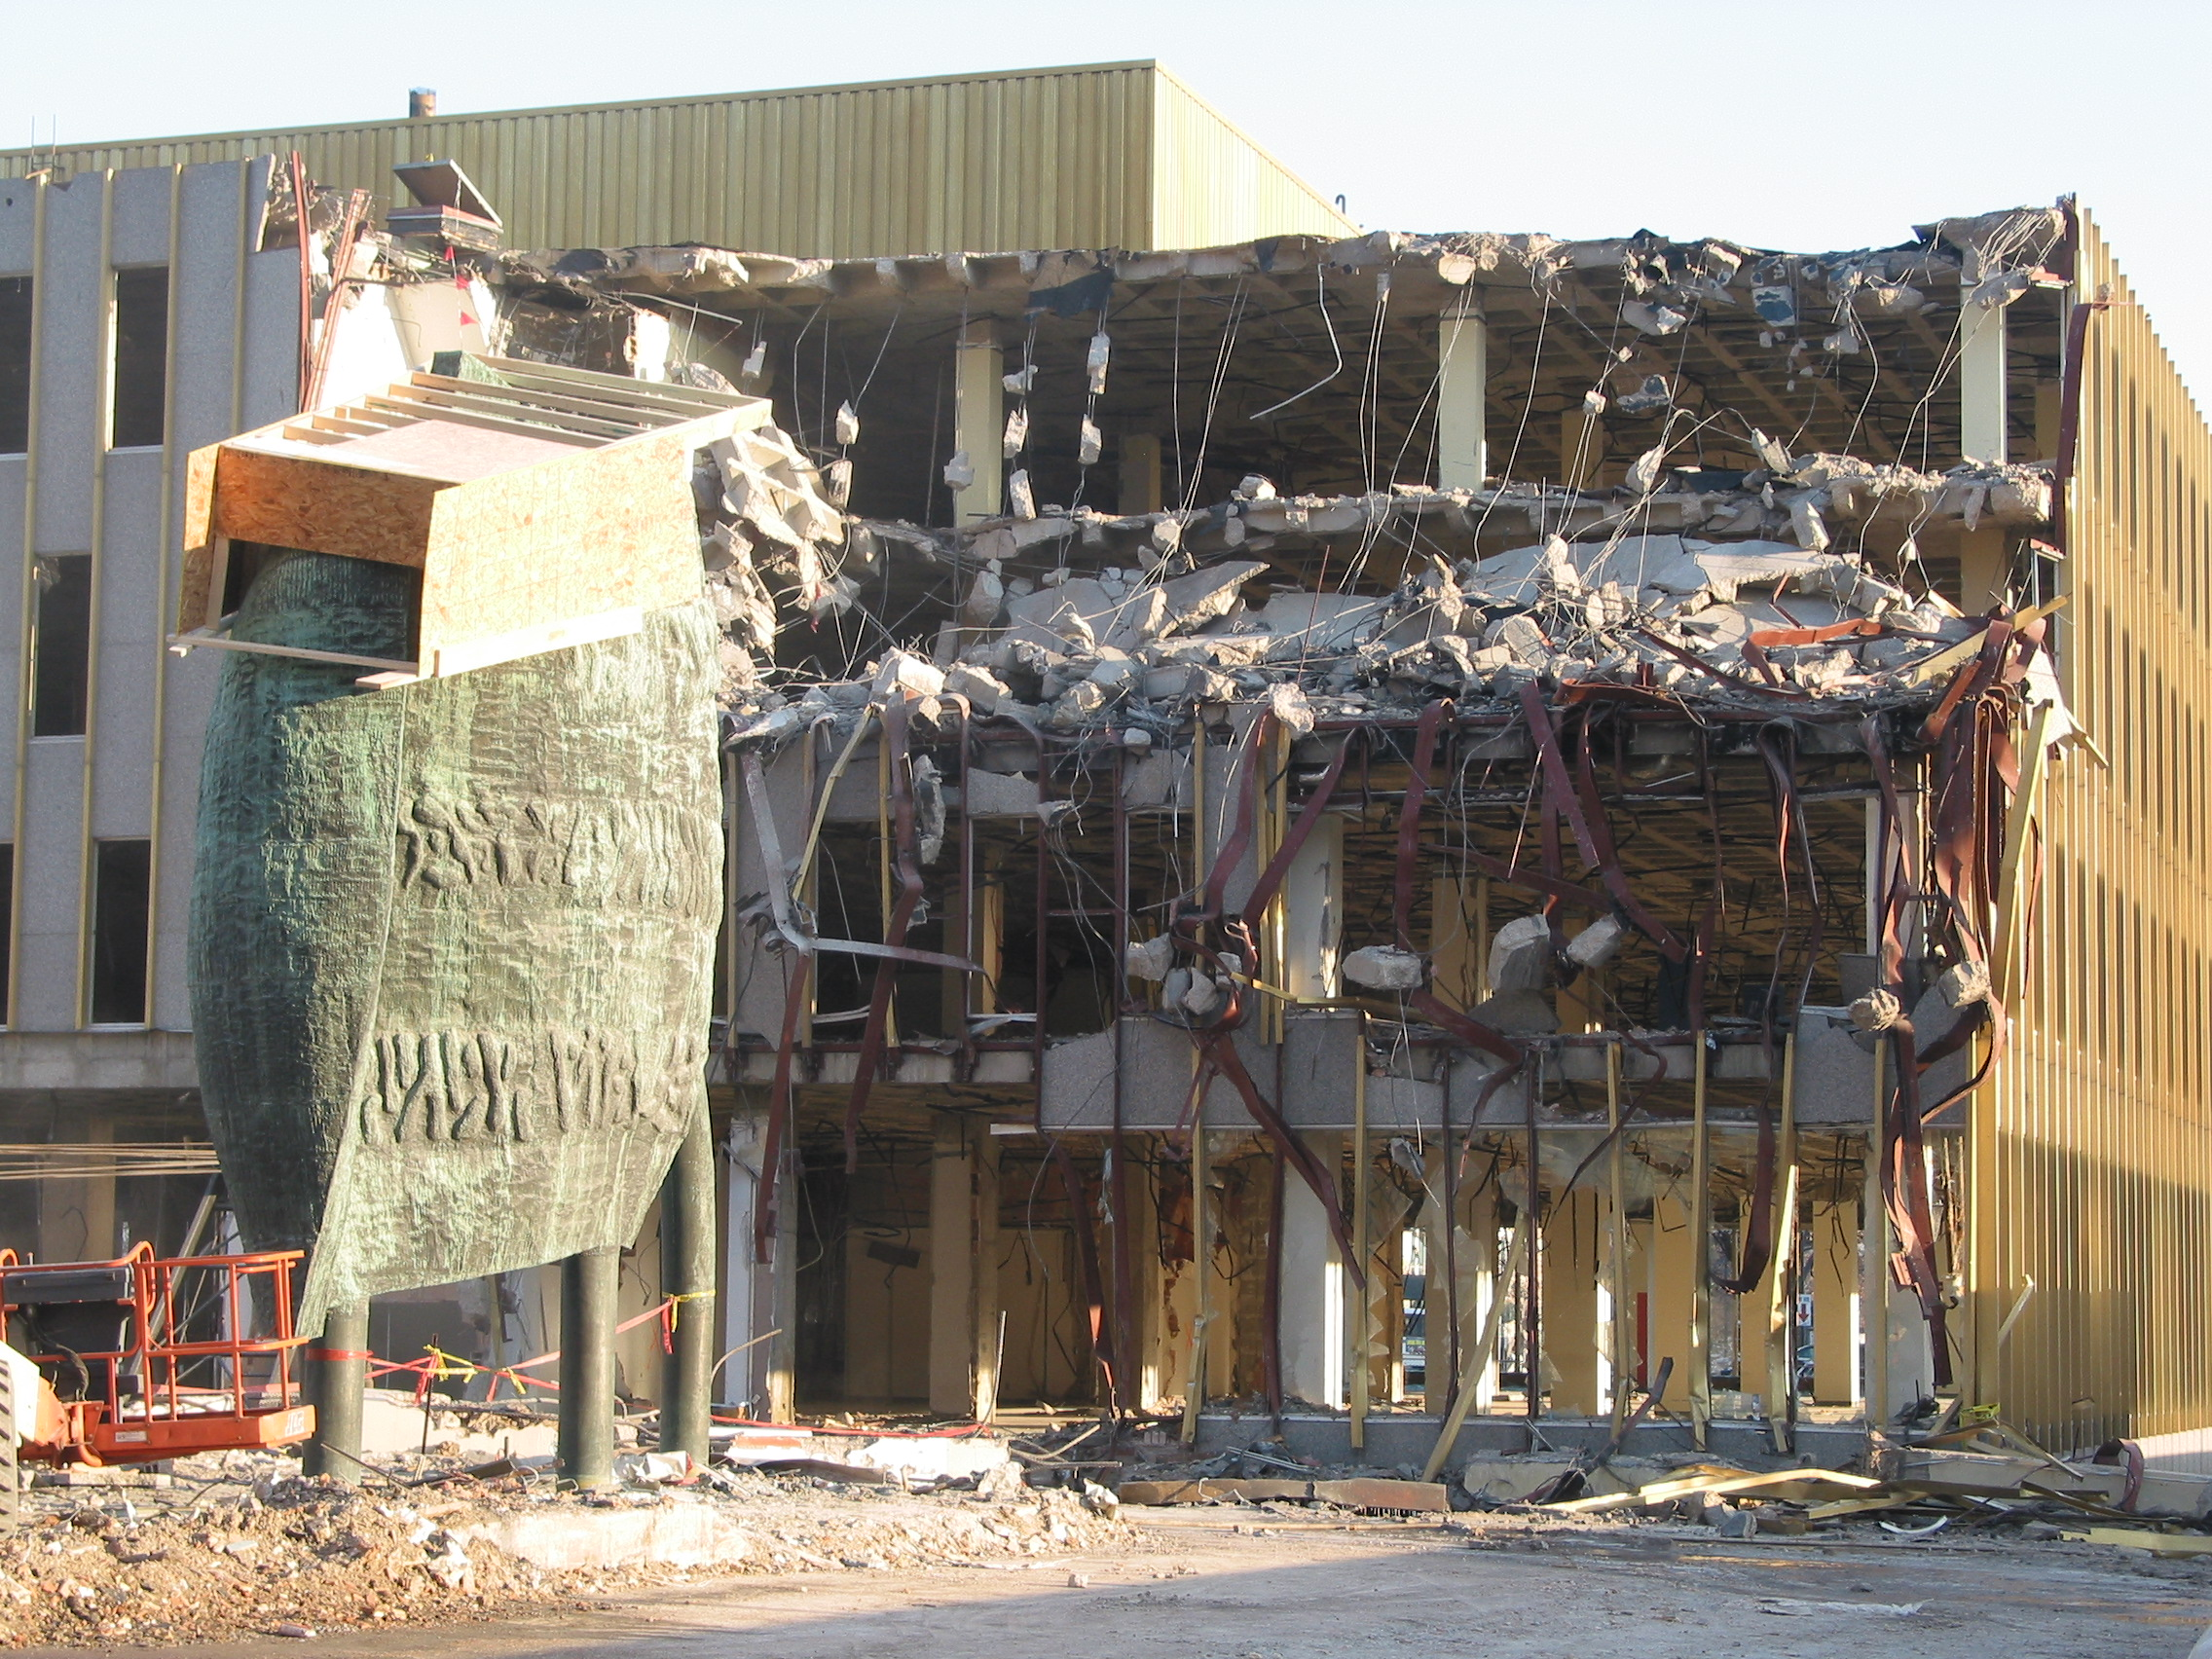 Demolition of the Minneapolis Public Library. Photograph by Charlene Roise.